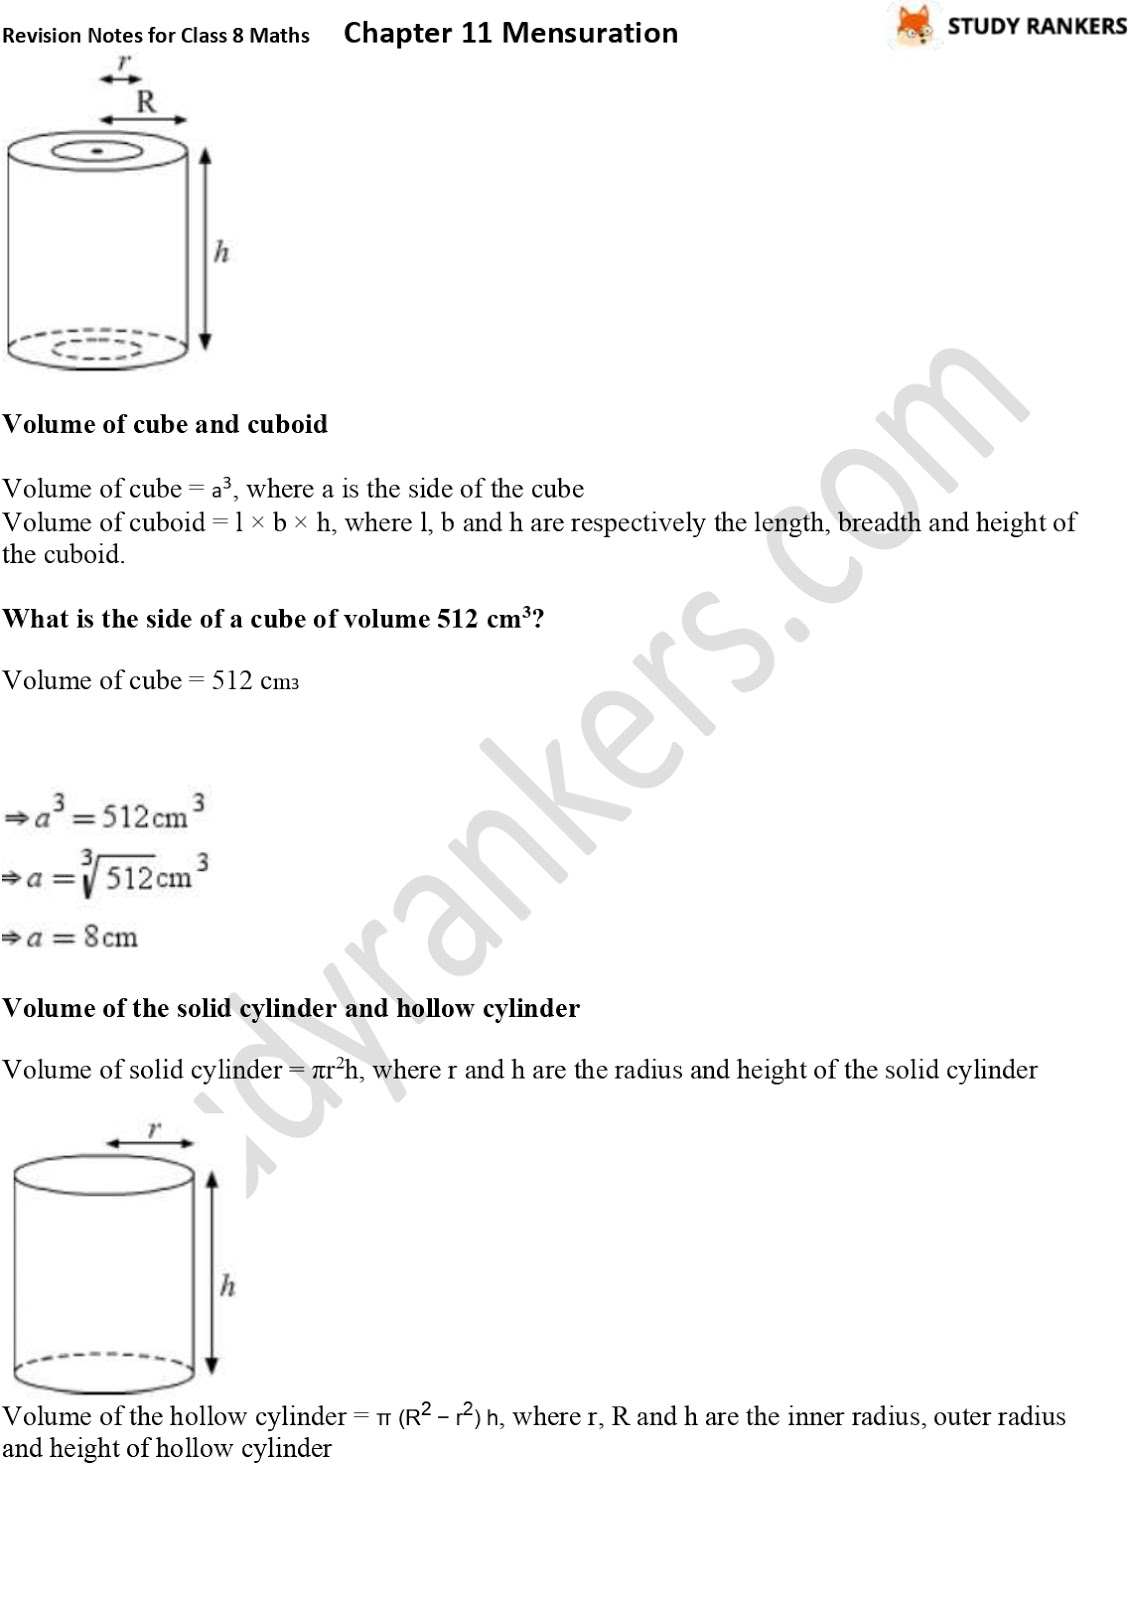 CBSE Revision Notes for Class 8 Chapter 11 Mensuration Part 5